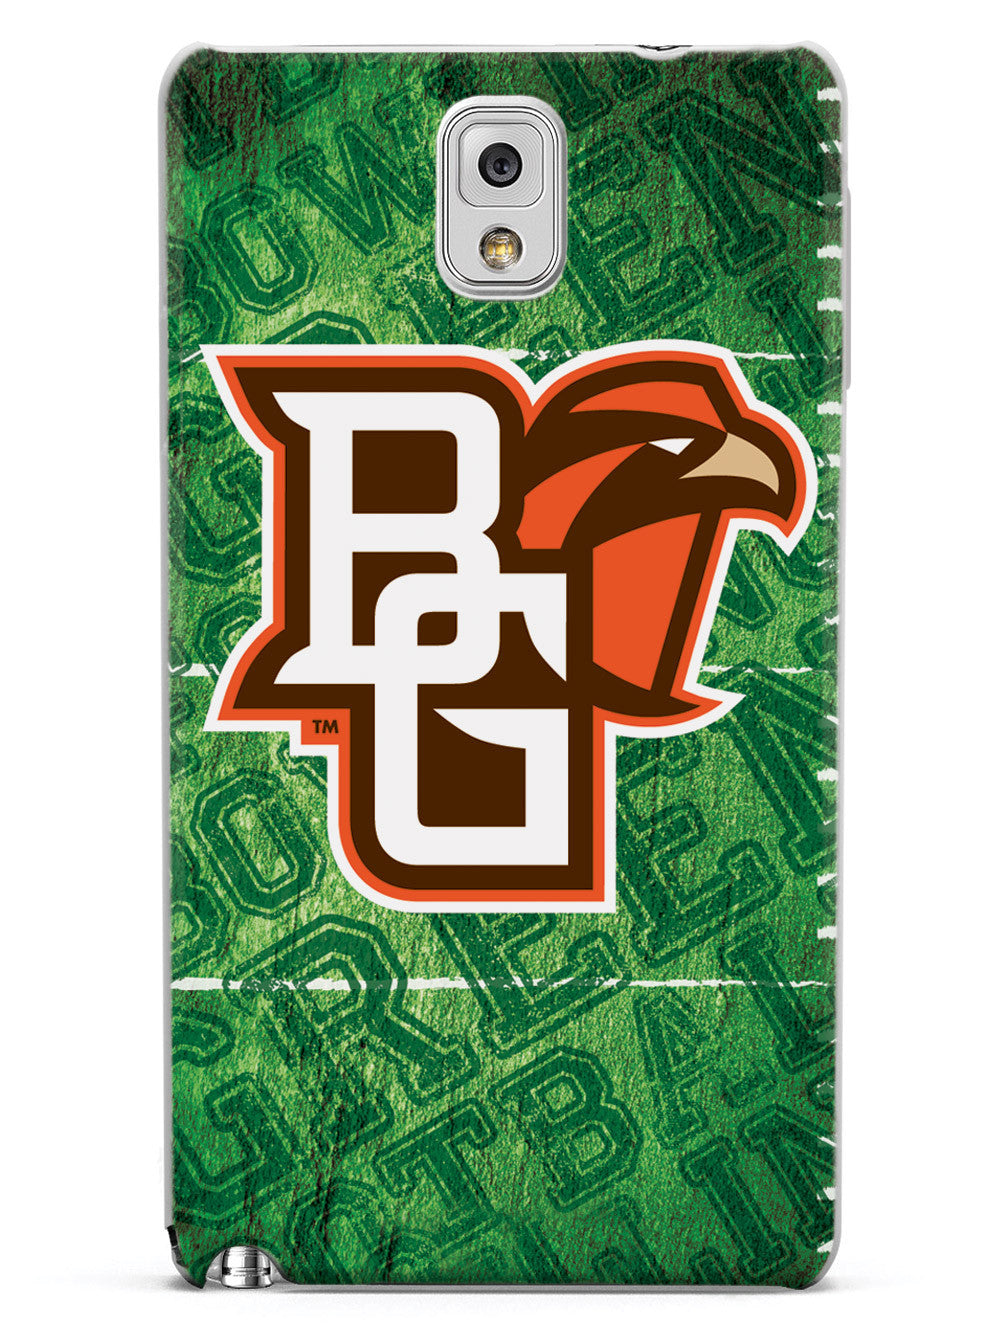 Bowling Green Falcons - Football Case